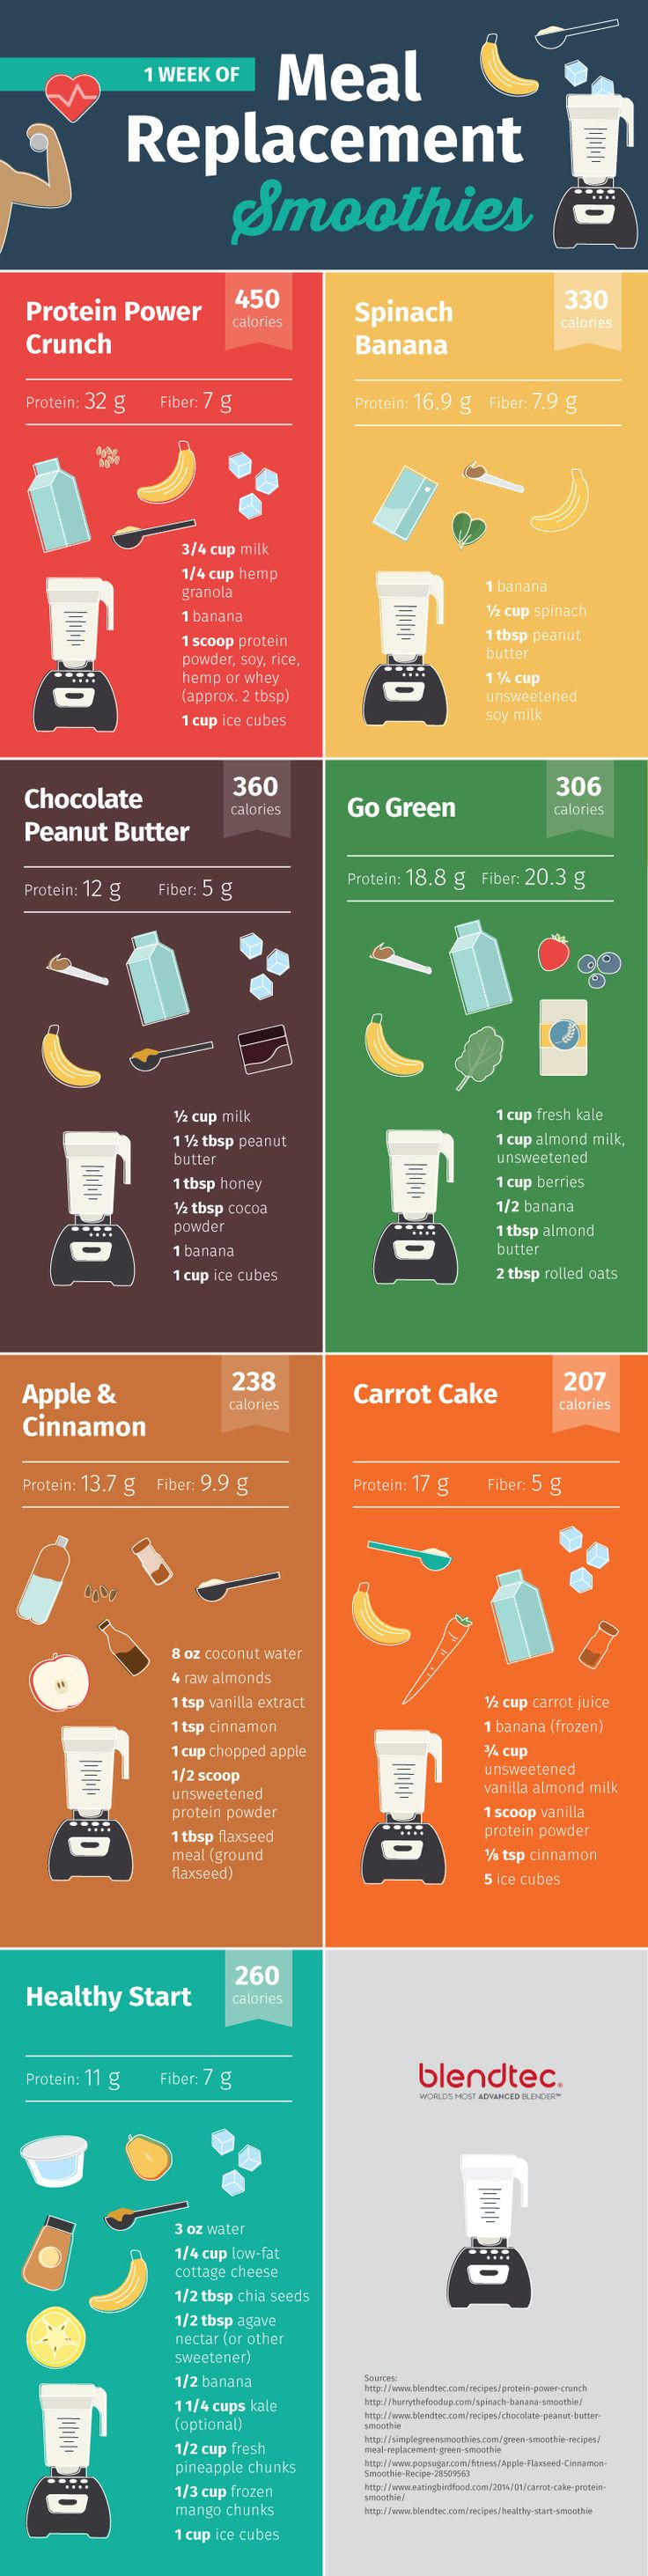 Meal Replacement Smoothie Recipes For Weight Loss  Meal Replacement Smoothies For Every Day The Week